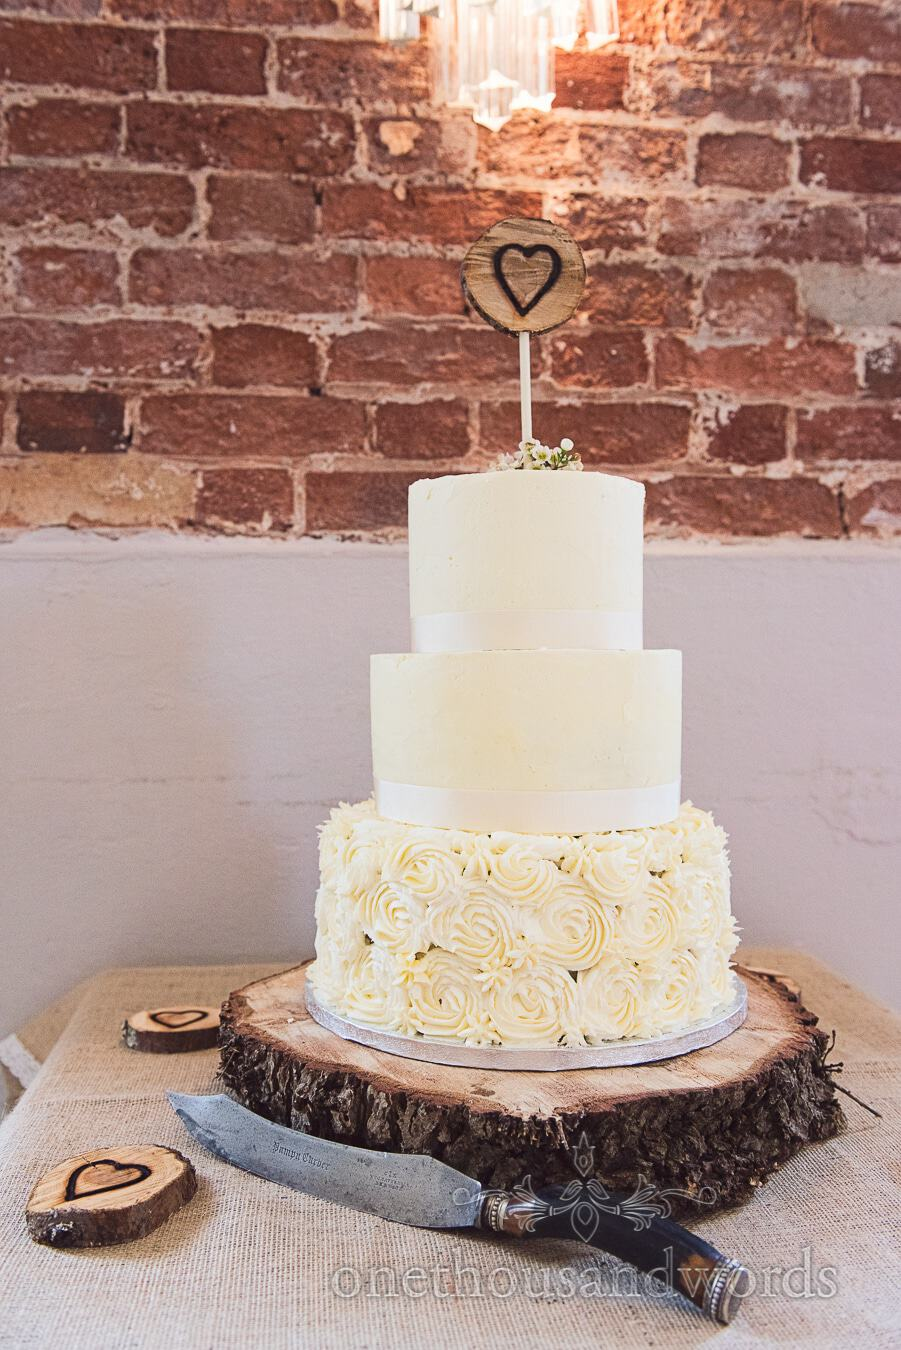 Cake on wood block base from wedding at Sopley Mill